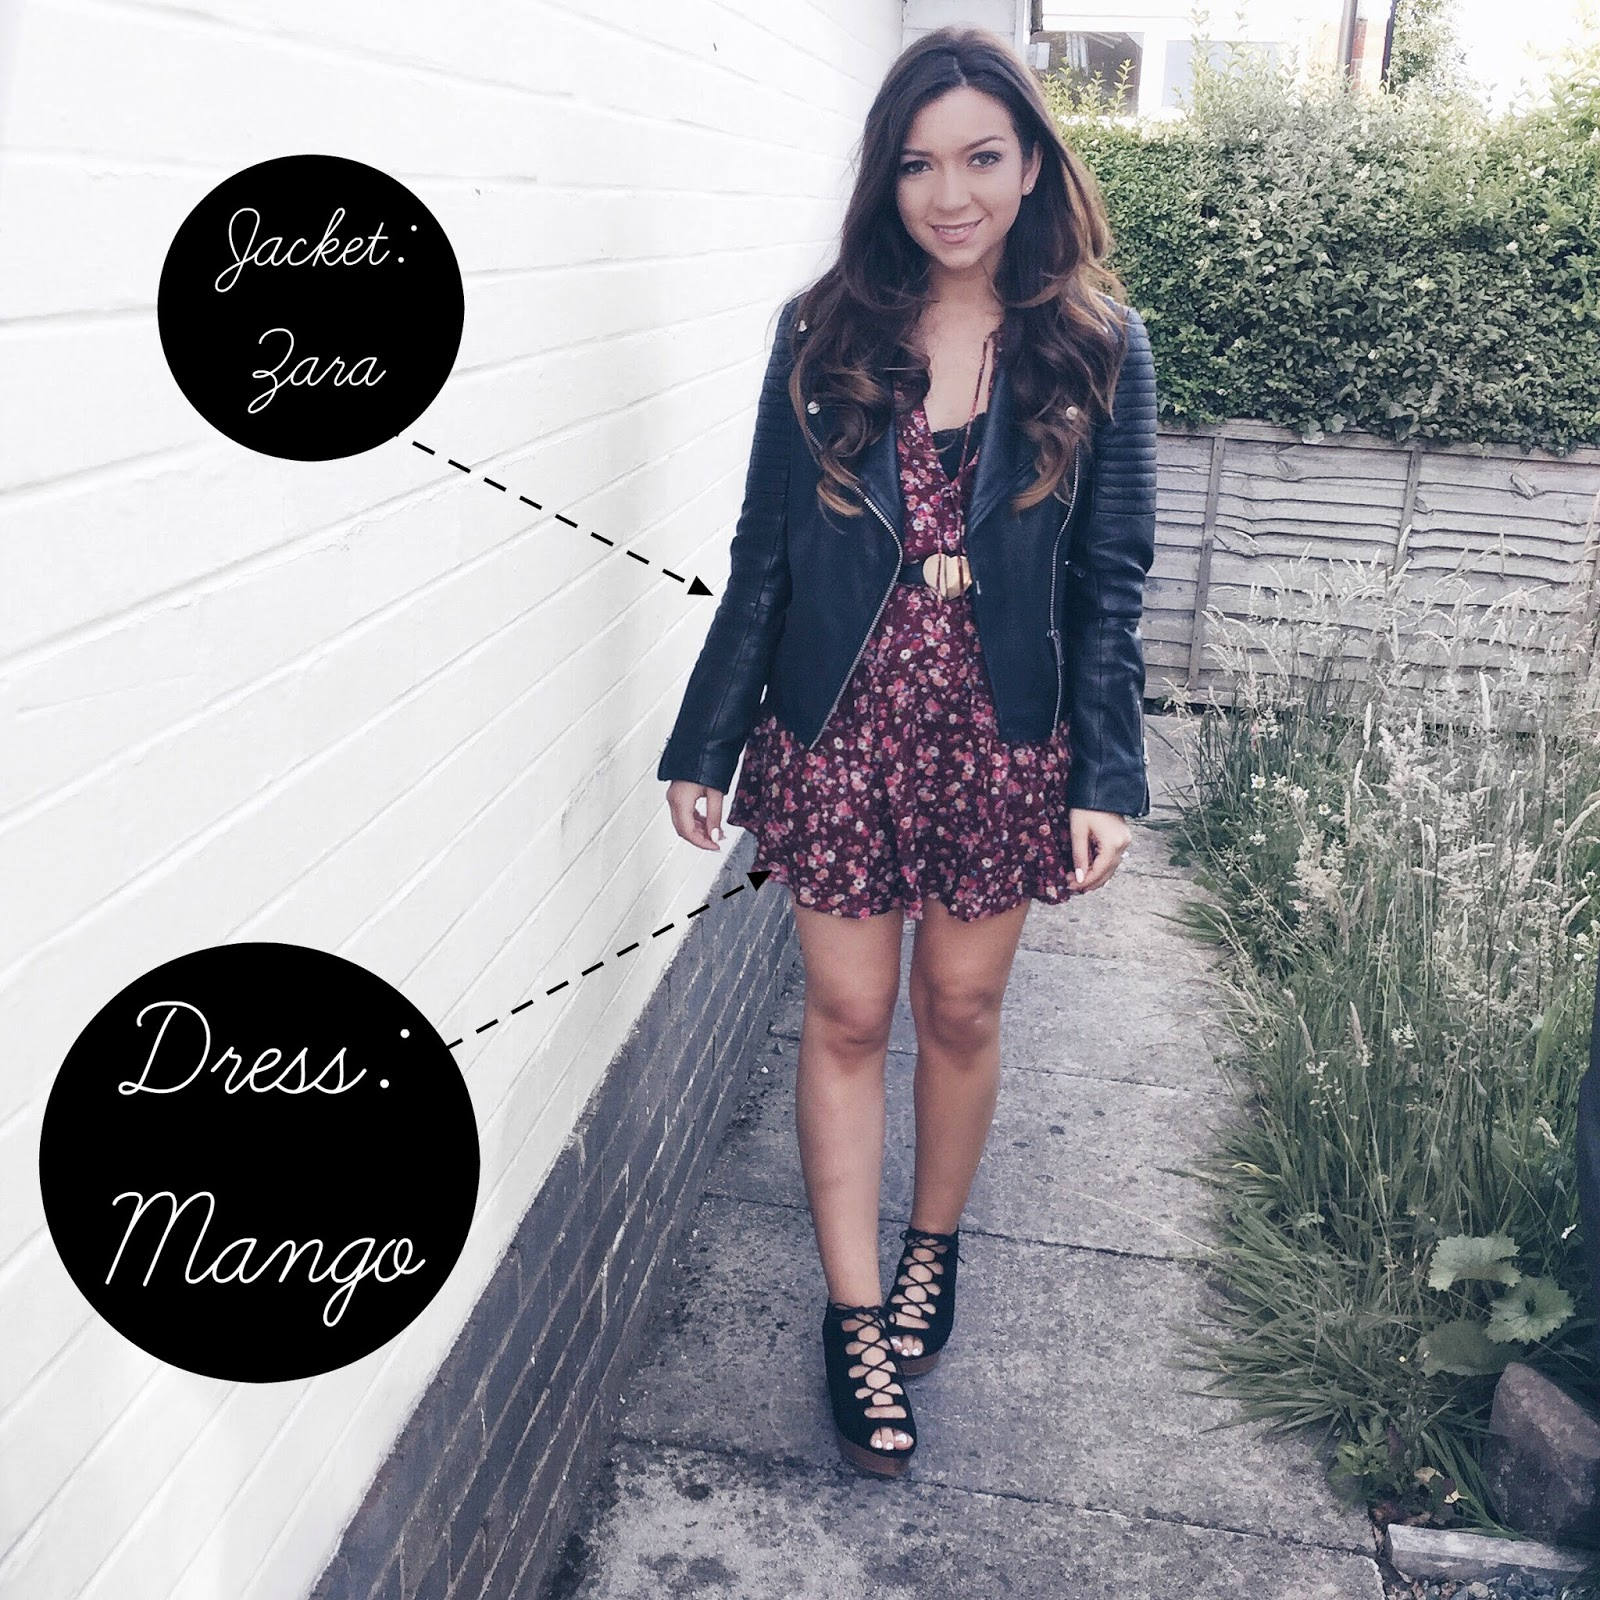 Fashion, Style, Outfits, Shopping, Instagram, New Look, Topshop, OOTD, Brandy Melville, Pinterest, Dizzybrunette3 outfits